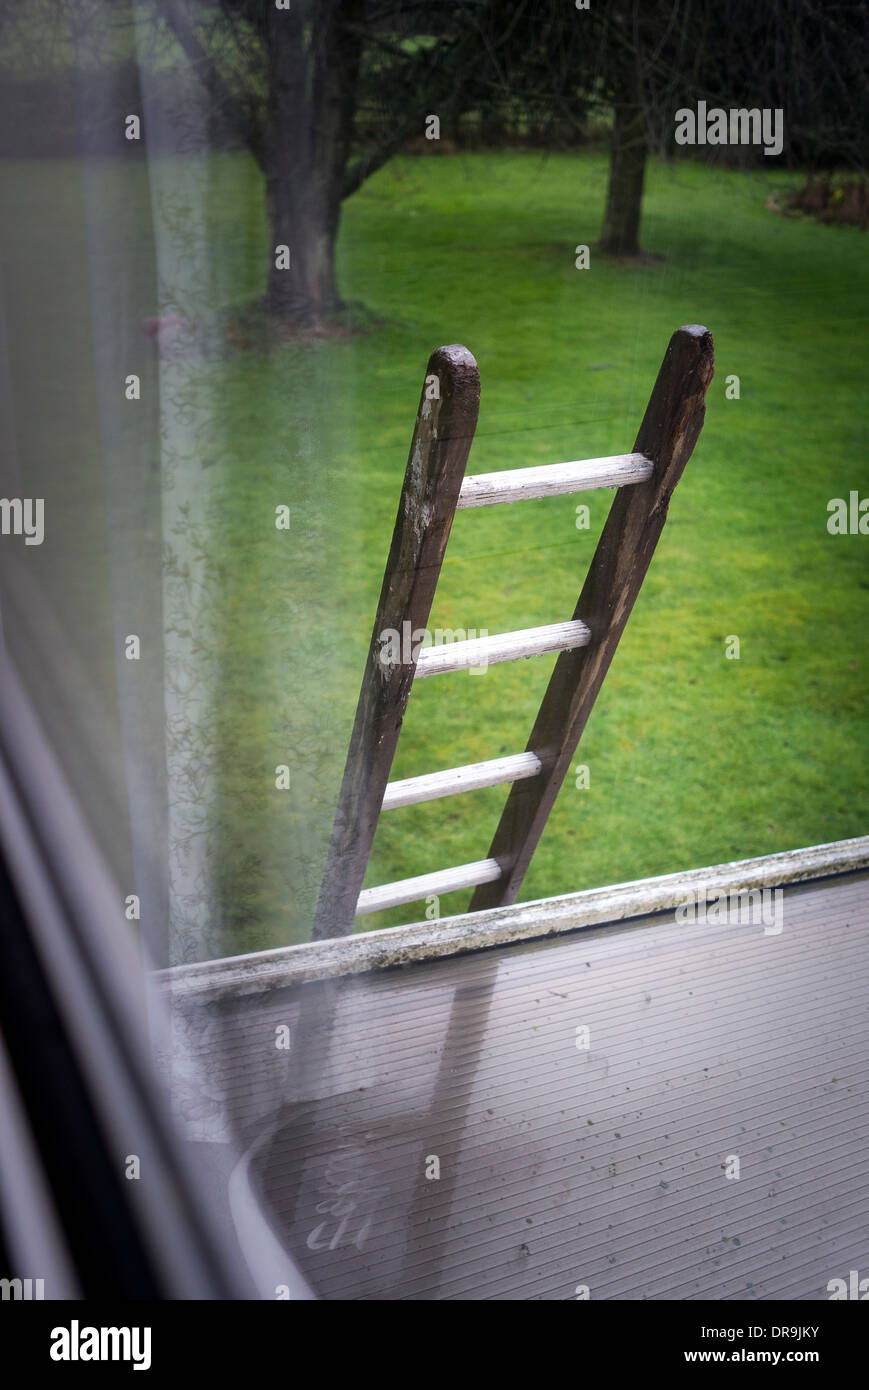 Ladder left with access to upstairs window exposing security risk against burglars (Seen through double glazed window) - Stock Image